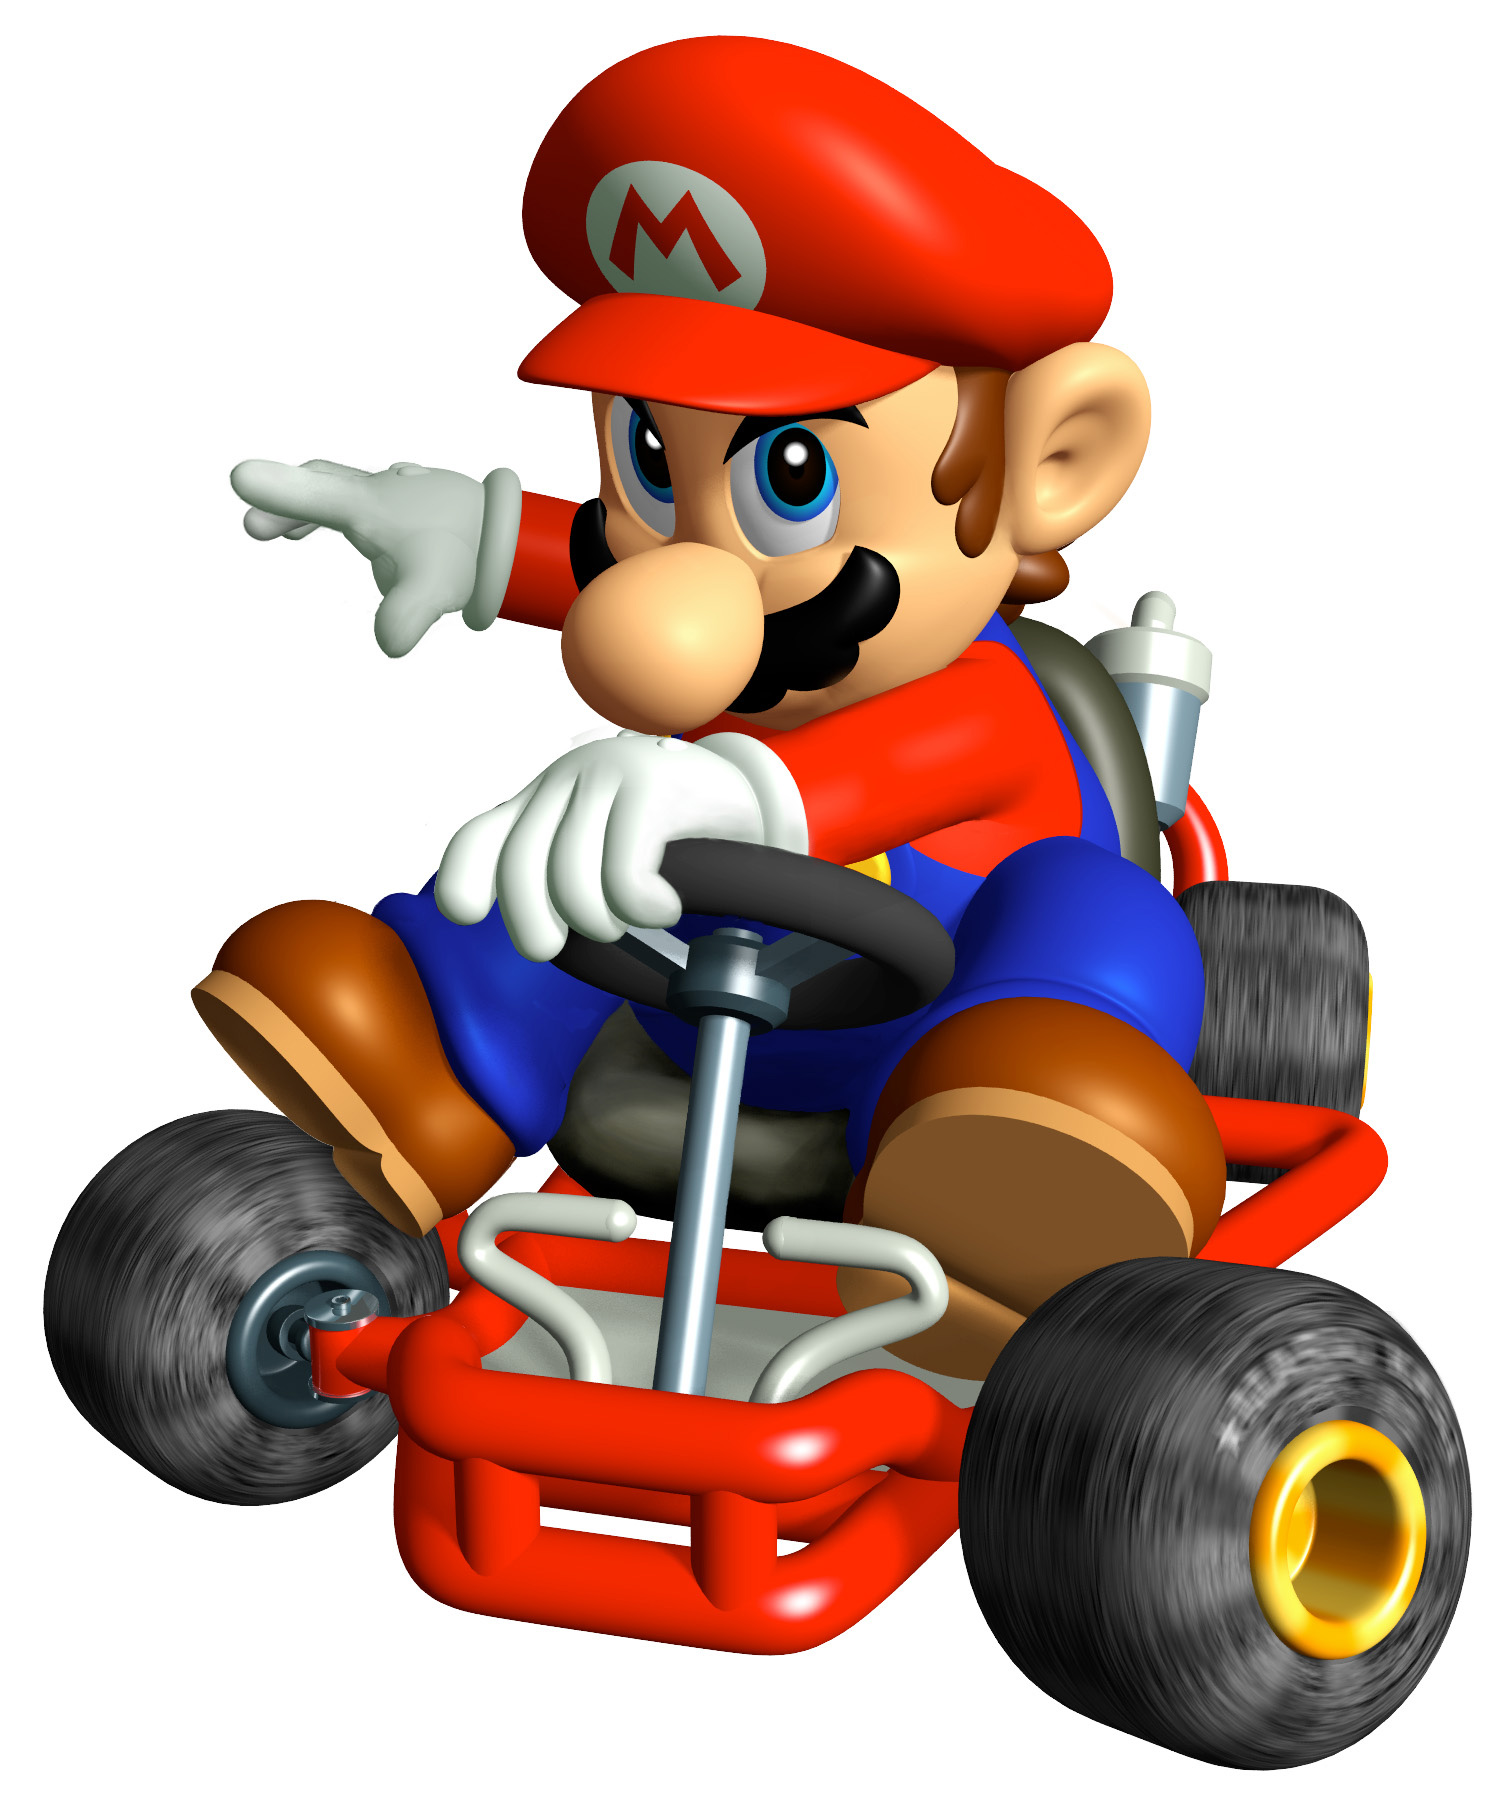 image mario mk64 jpg mario kart racing wiki fandom powered by